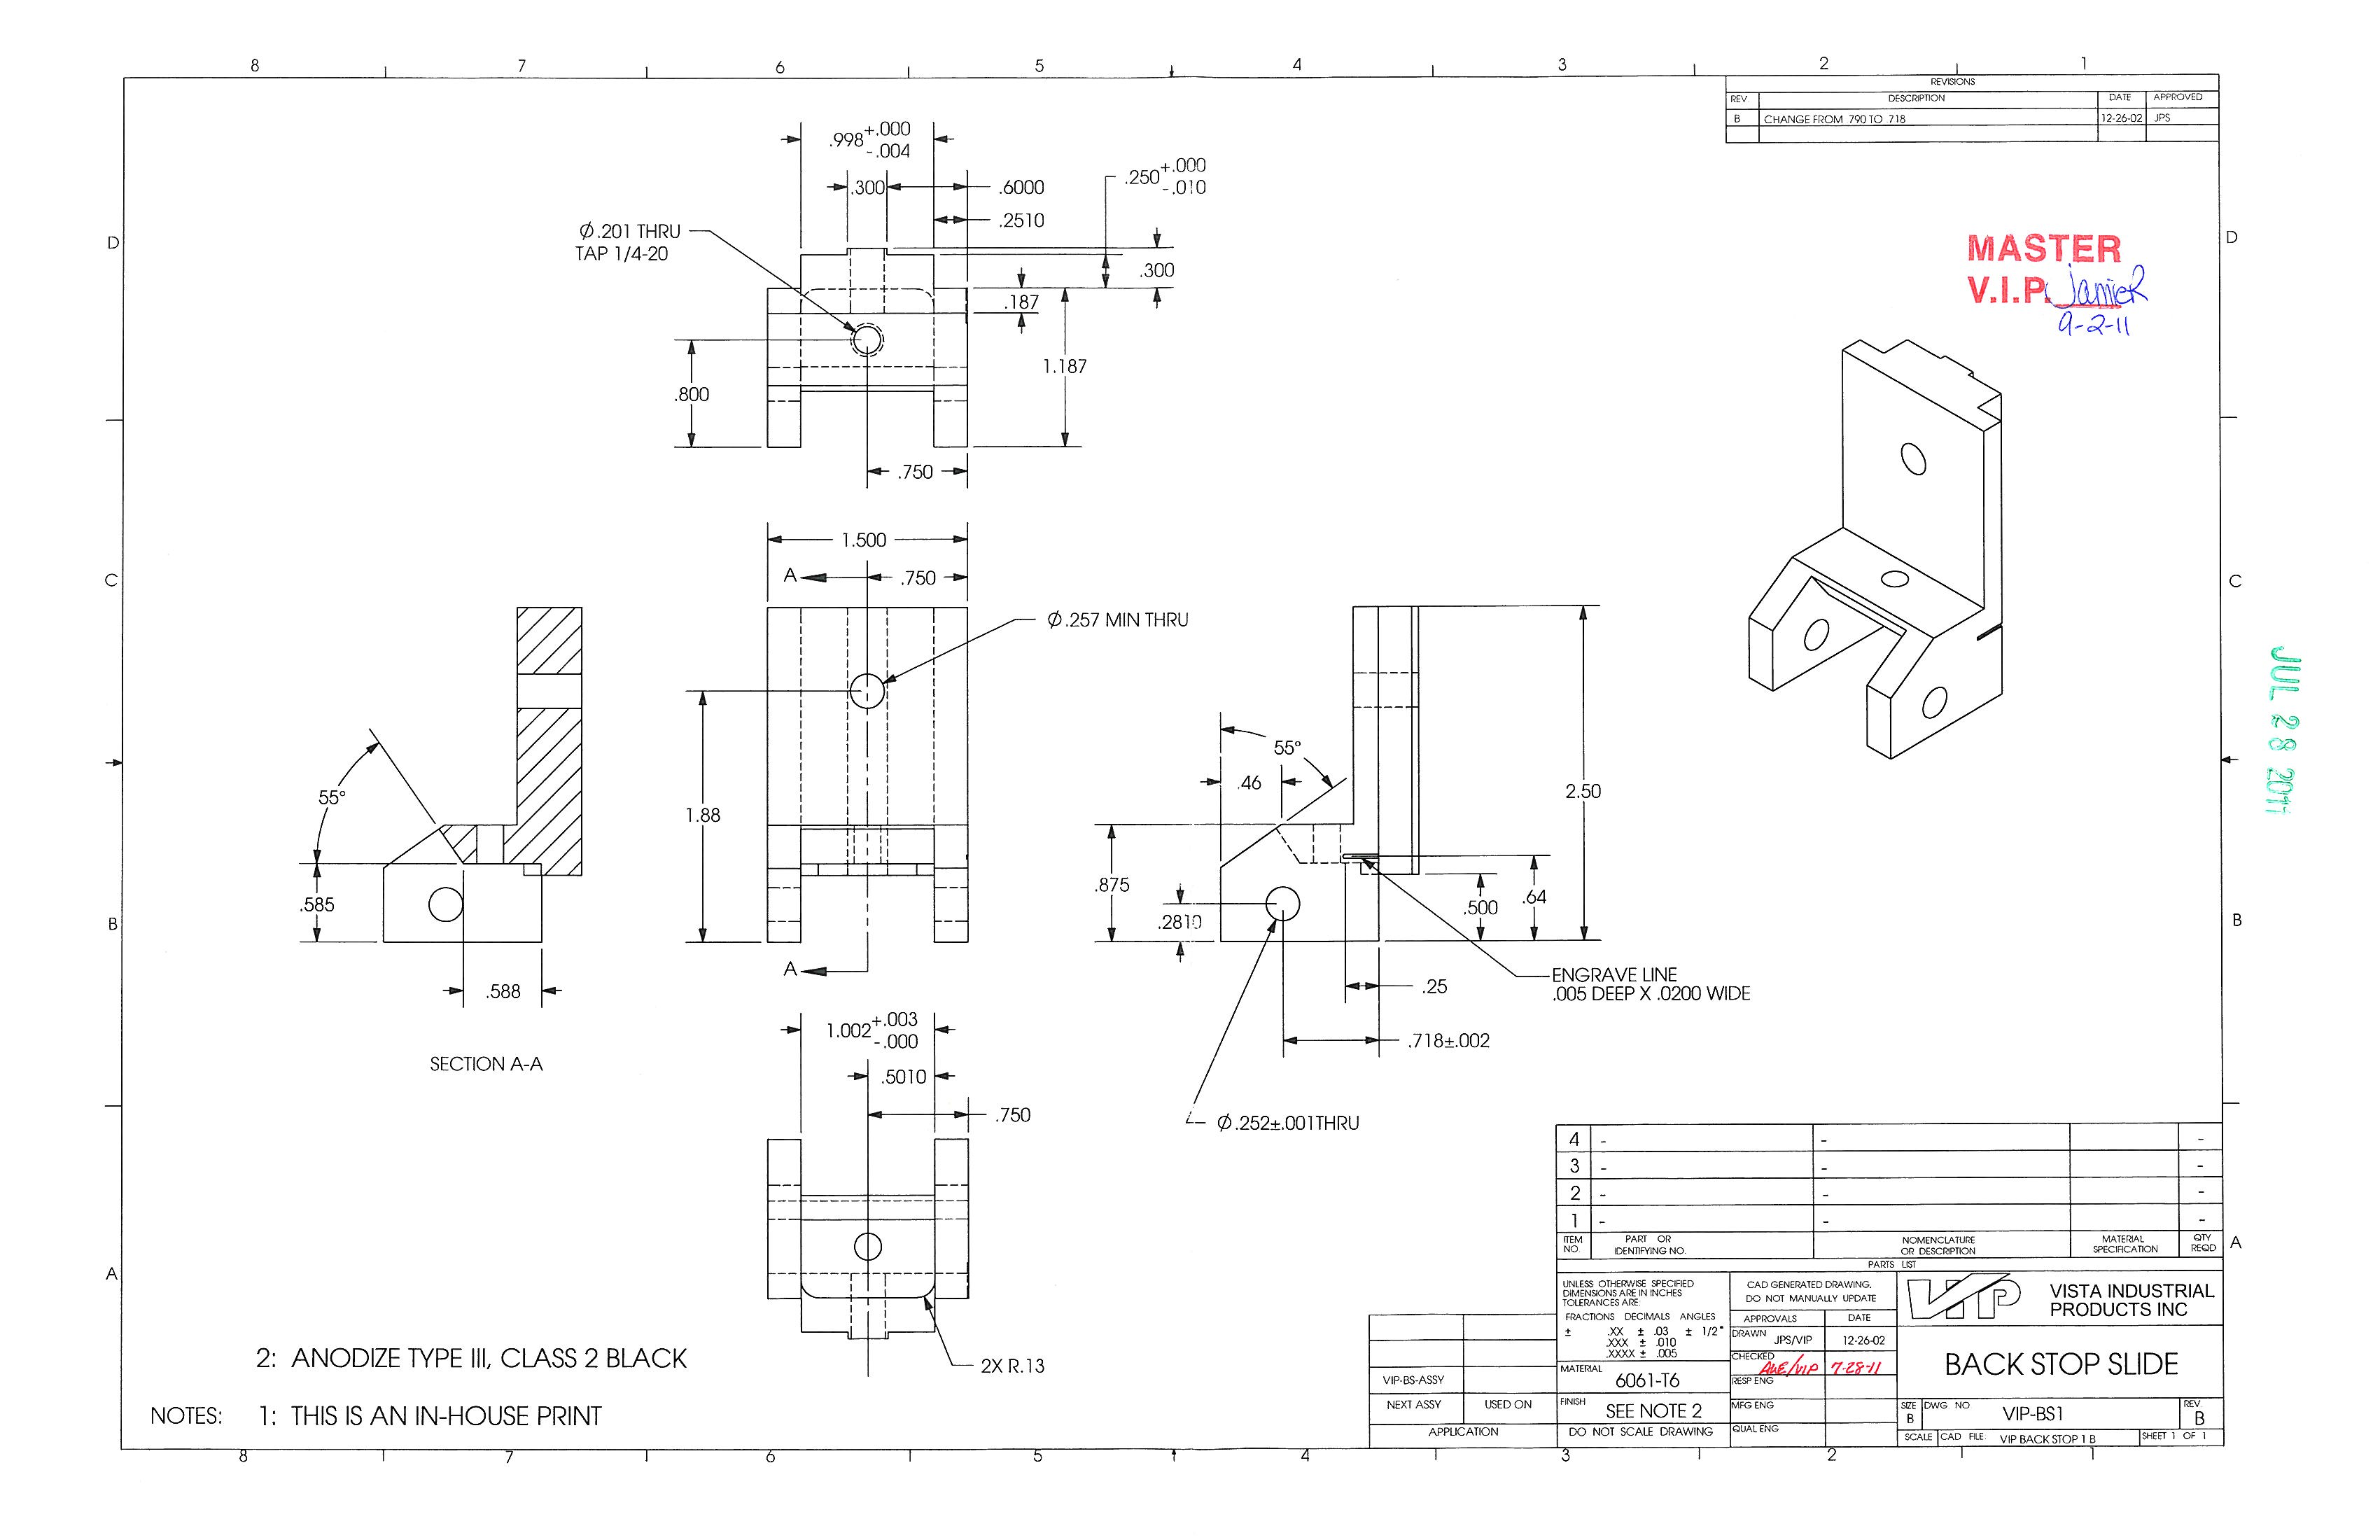 How to read a manufacturing drawing vista industrial products inc malvernweather